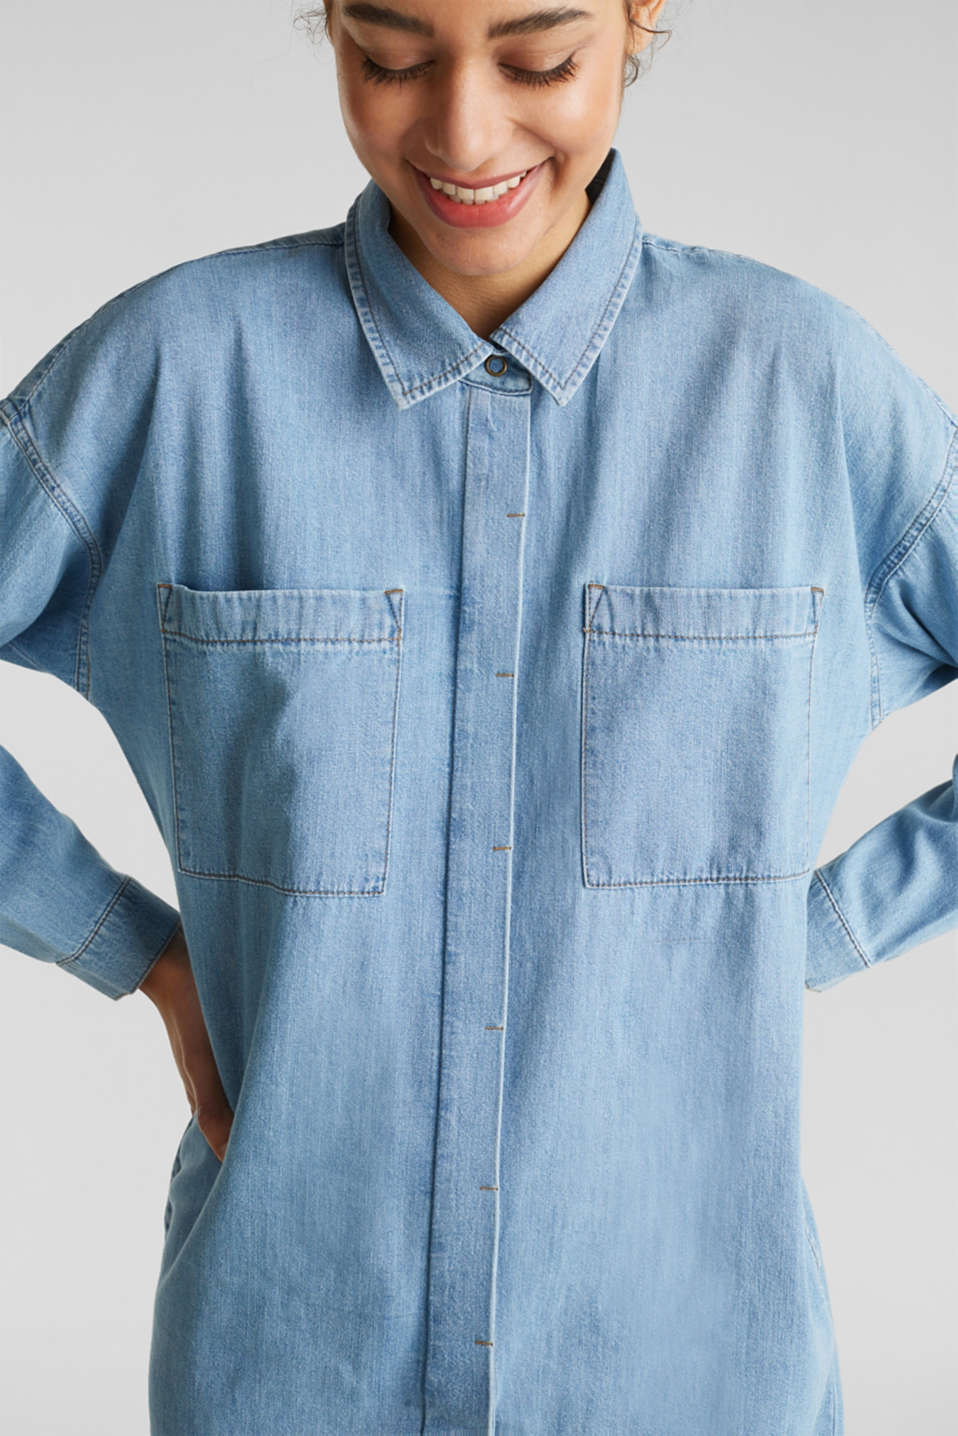 100% cotton denim shirt dress, BLUE LIGHT WASH, detail image number 3